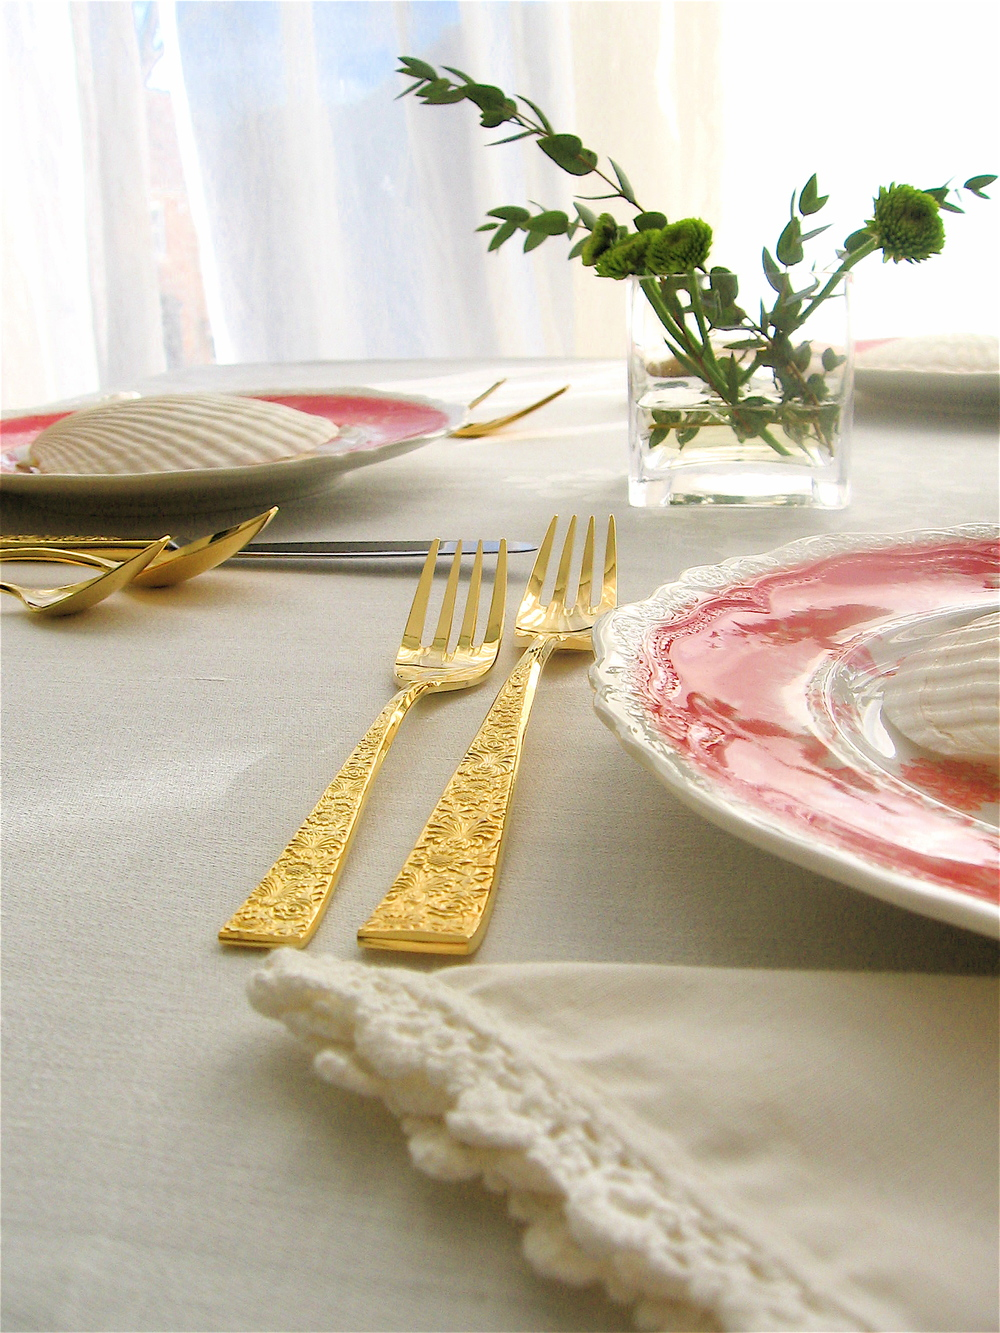 orange table setting.JPG